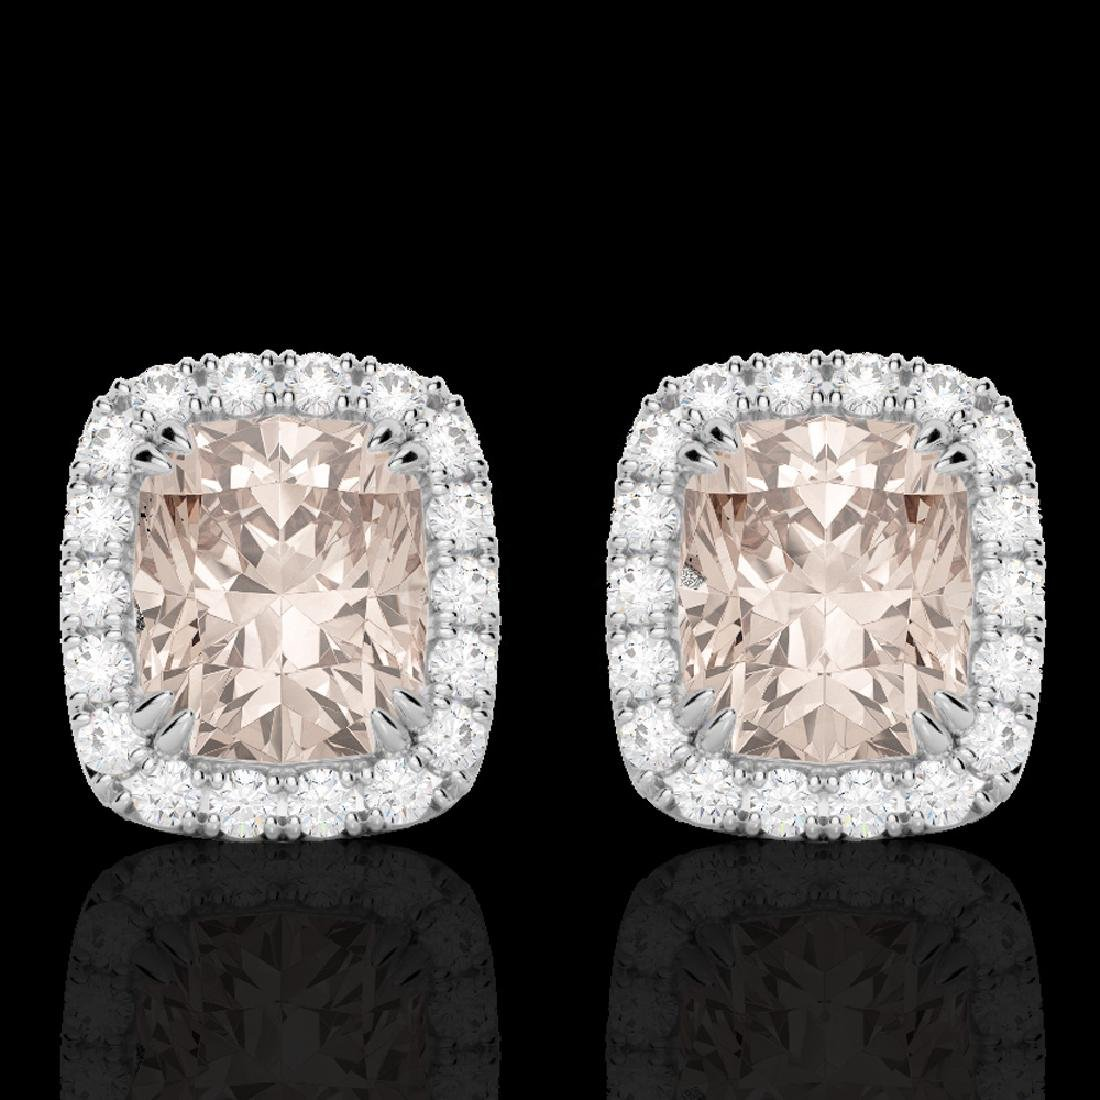 2.50 CTW Morganite & Micro Pave VS/SI Diamond Halo